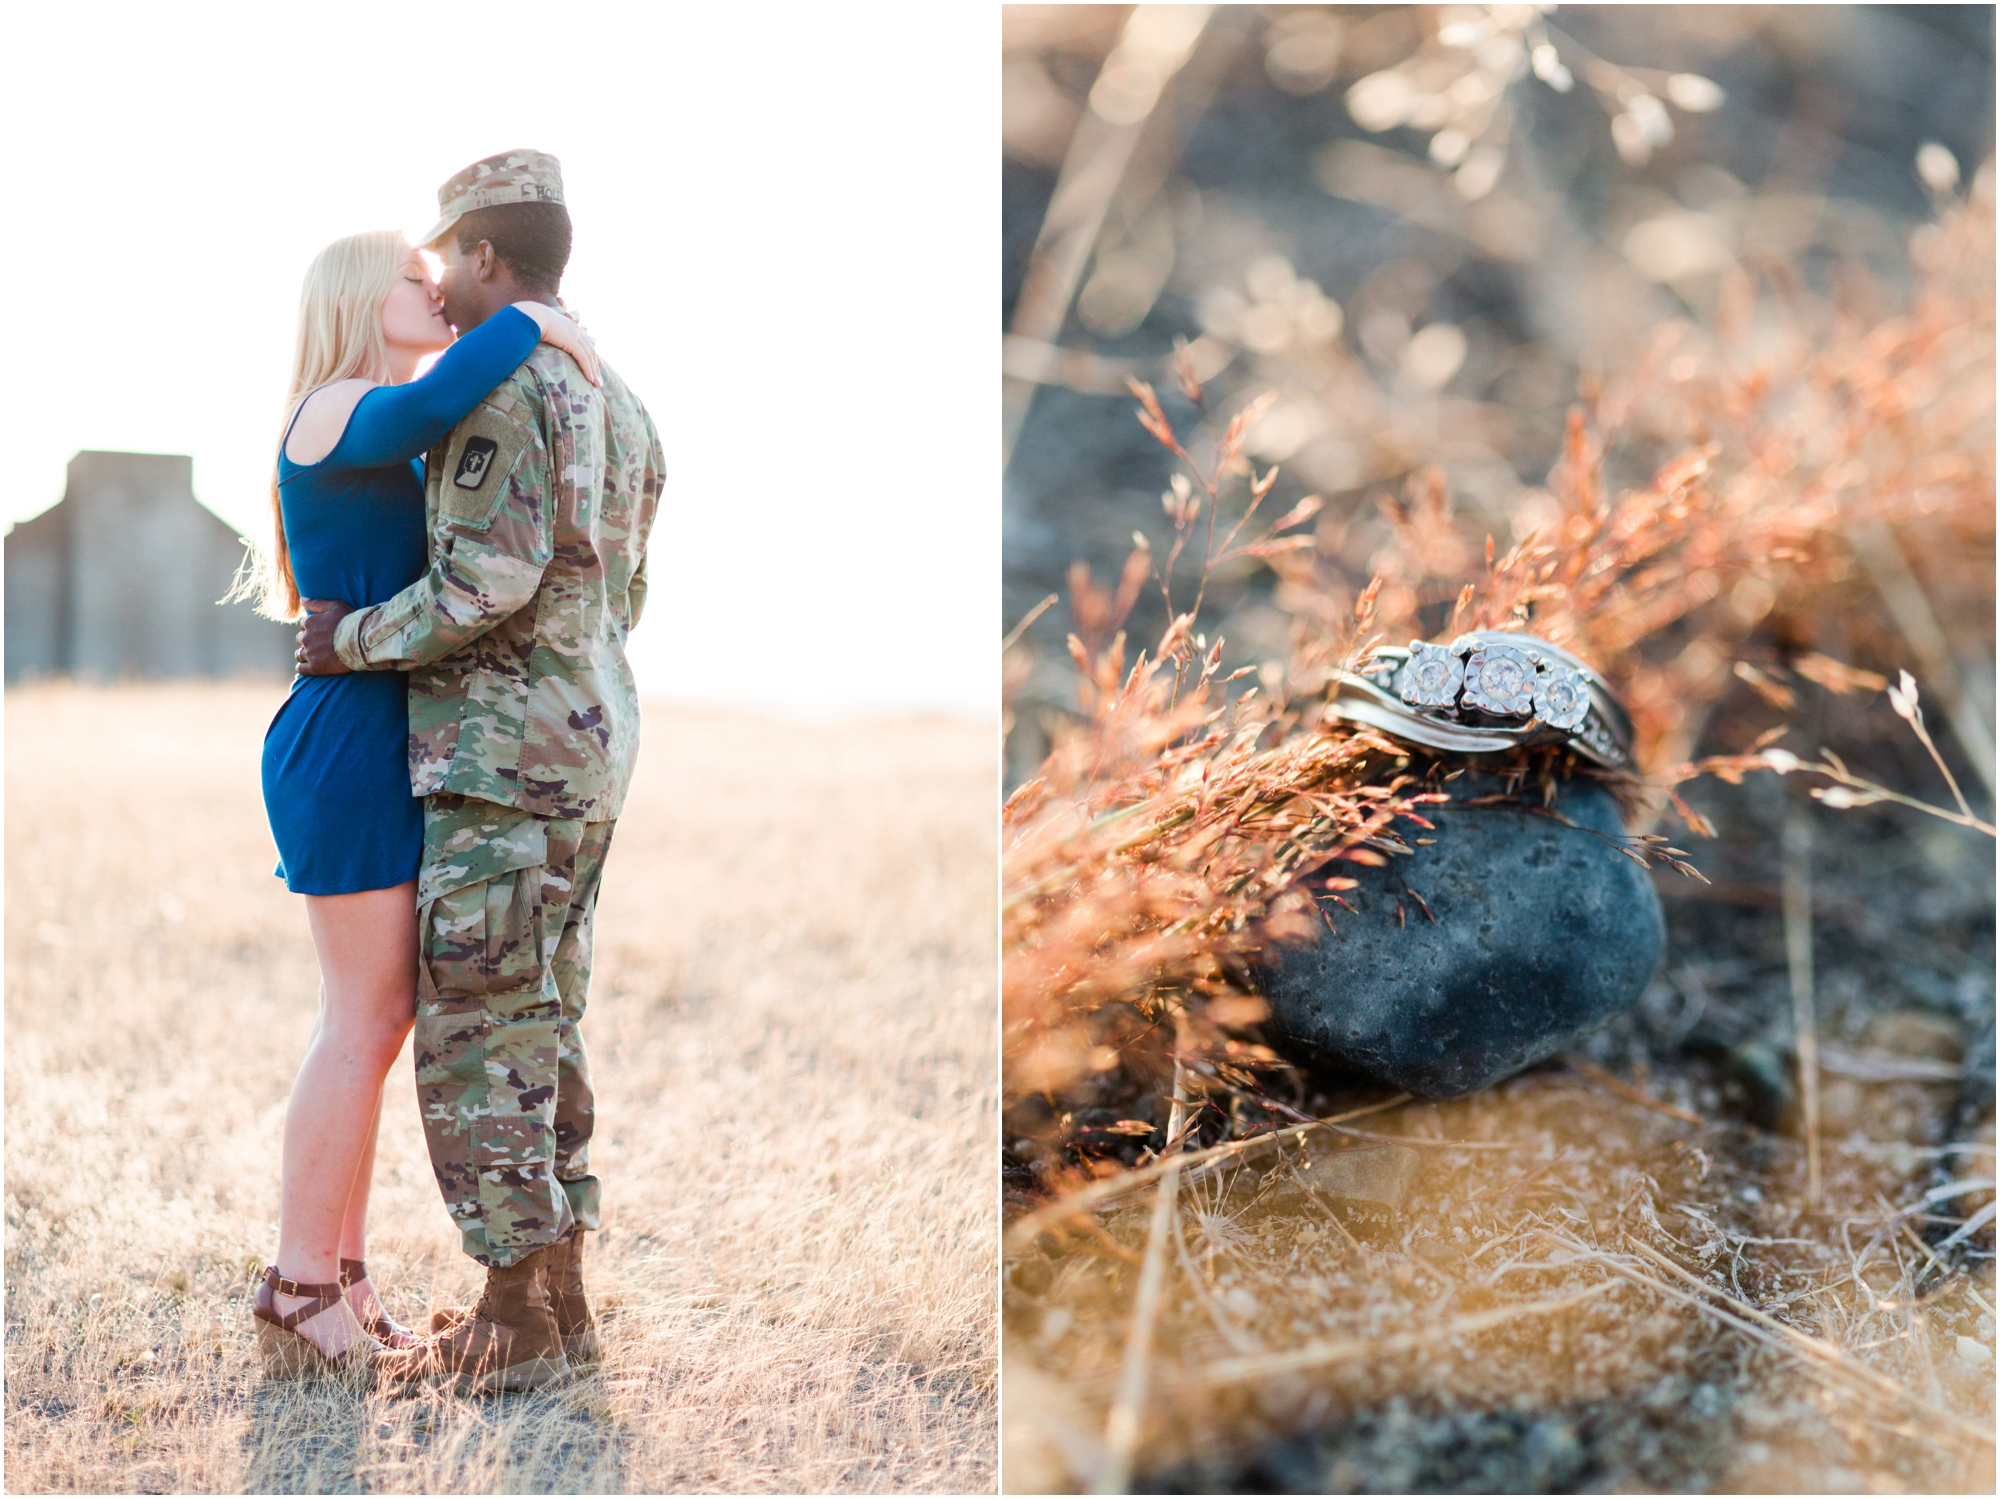 Chambers Bay engagement shoot in Tacoma, WA. Photos by Briana Calderon Photography based in the greater Seattle Area._1247.jpg